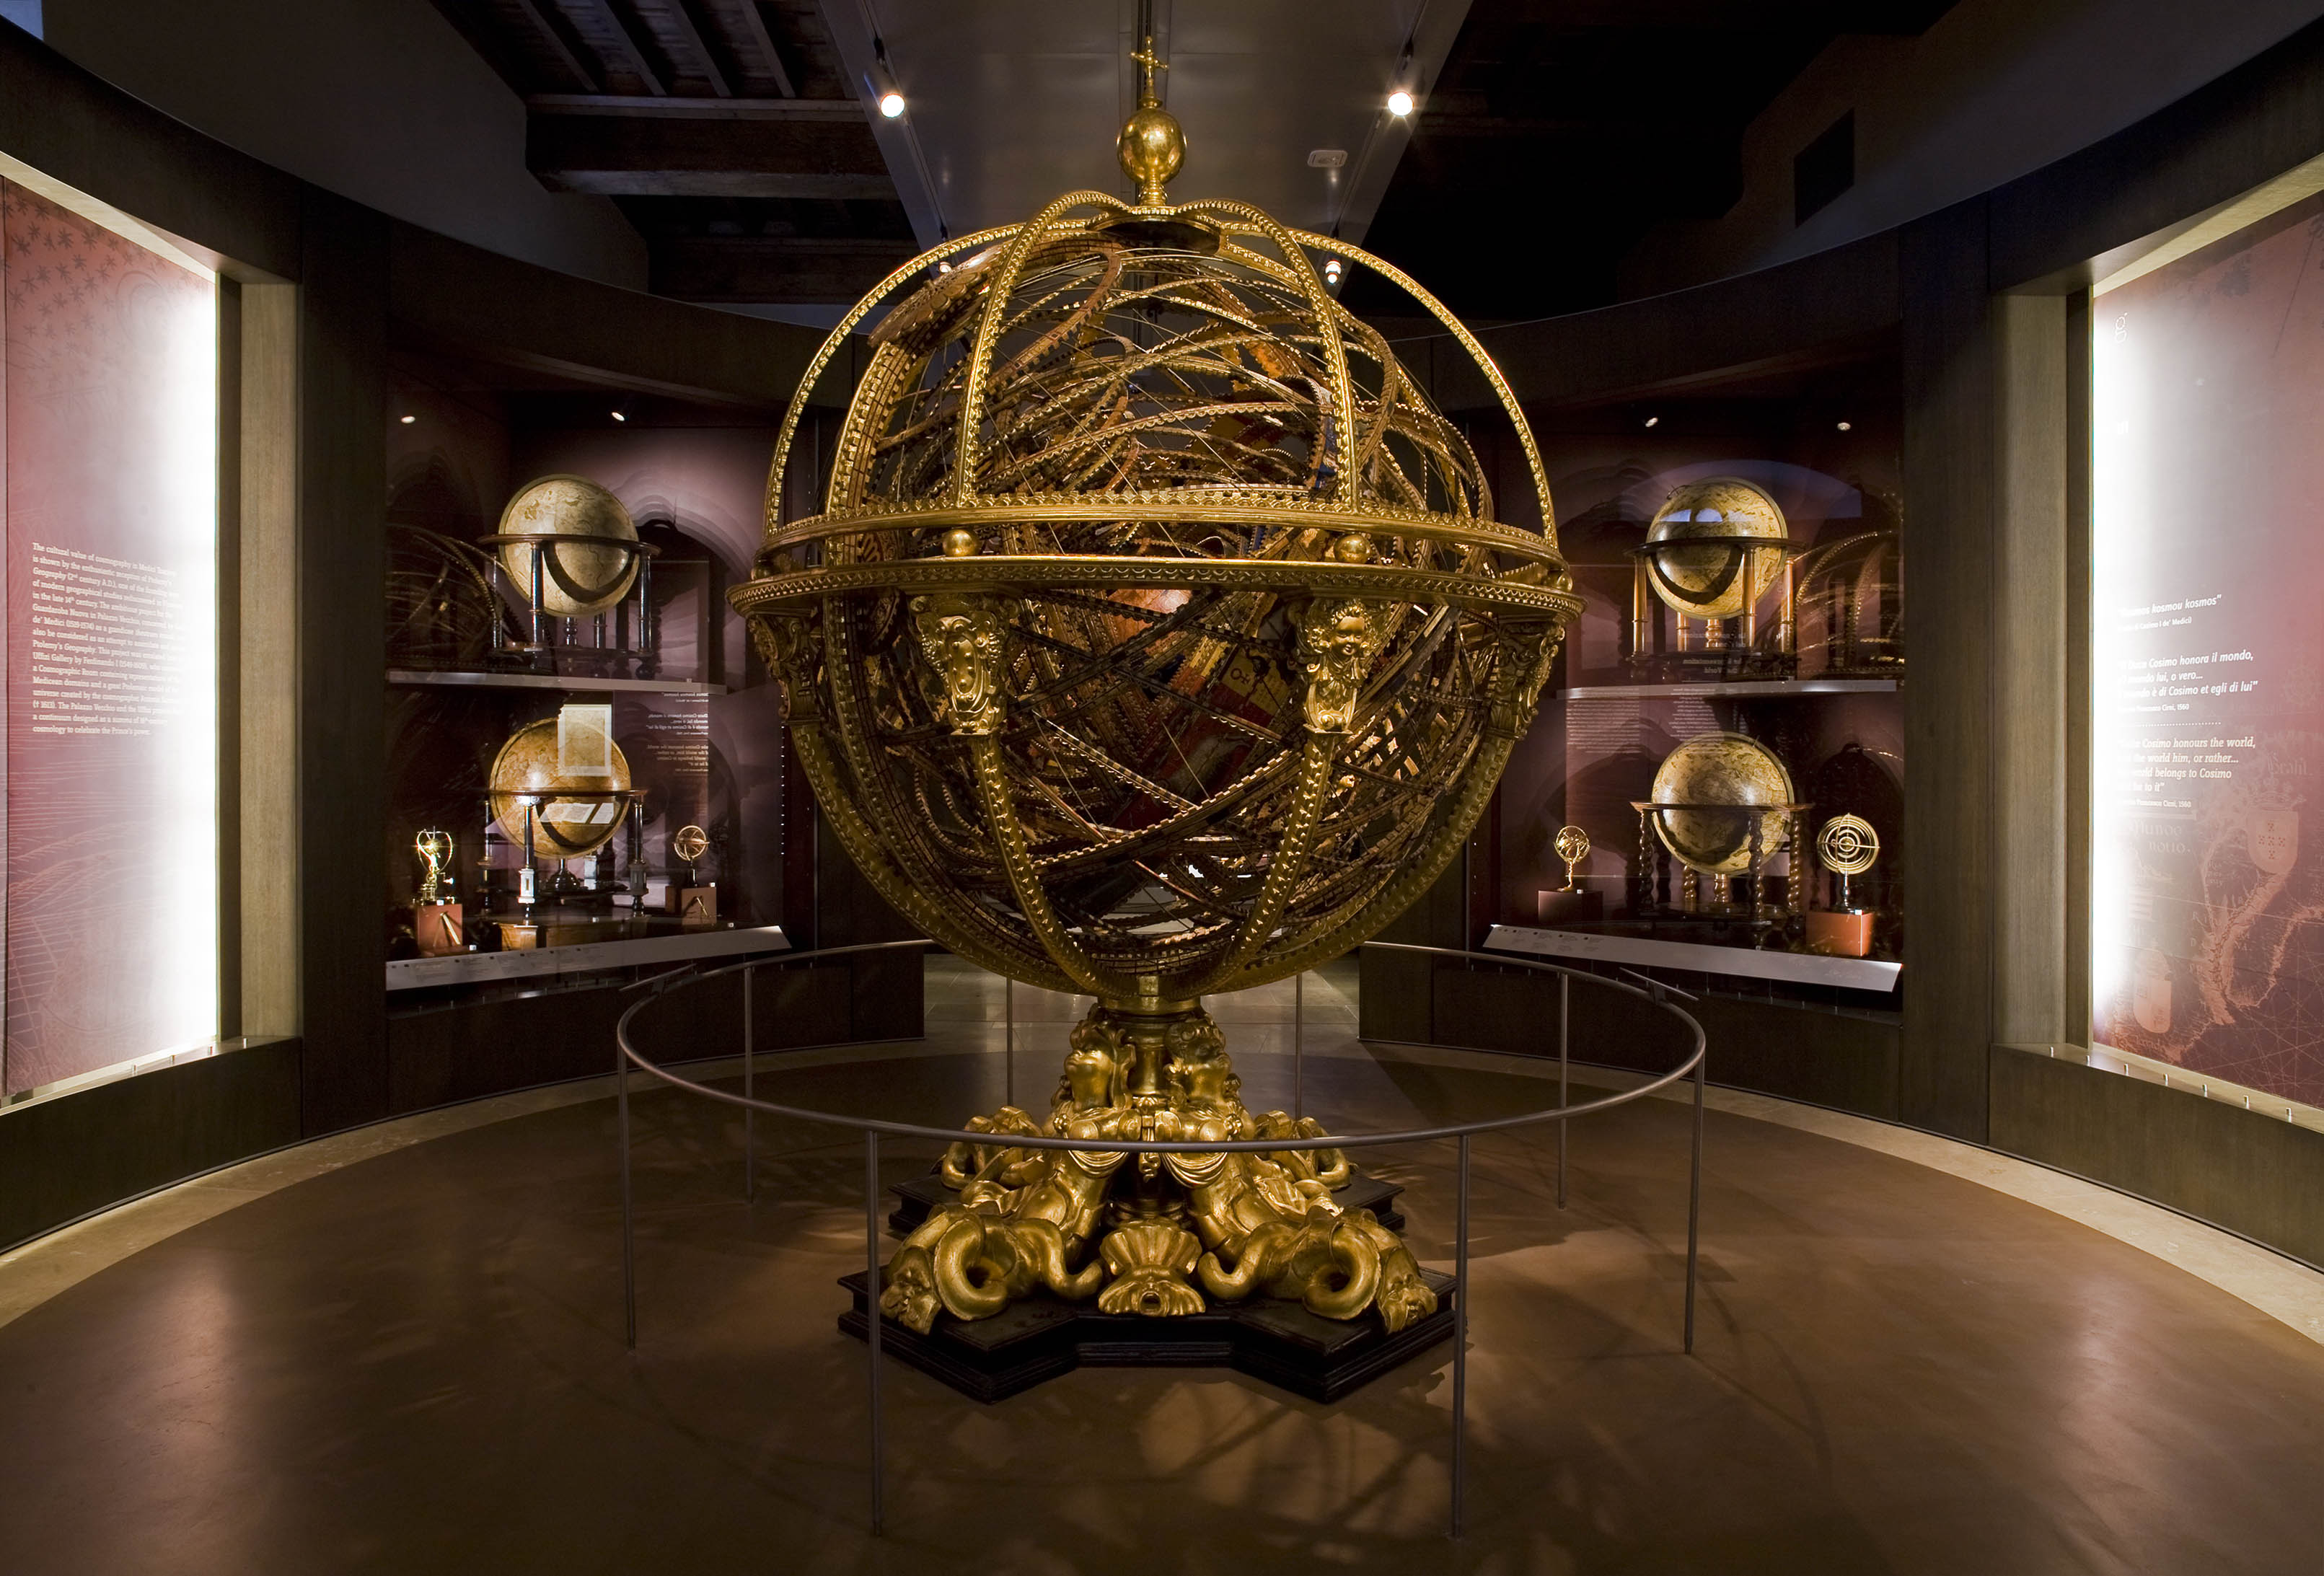 museo de florence italia galileo galilei - photo#3